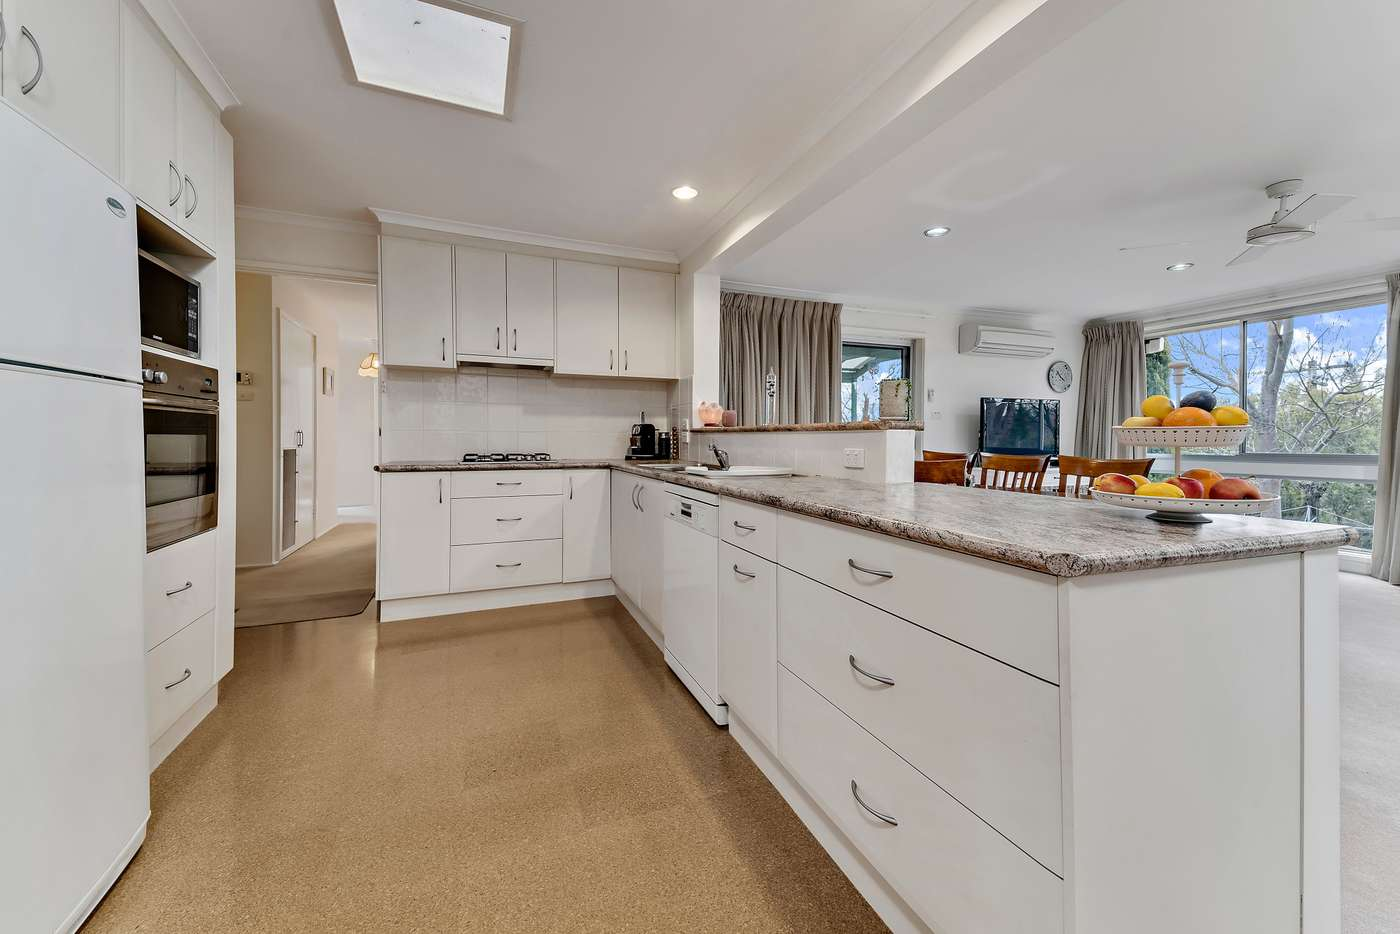 Sixth view of Homely house listing, 3 De Smet Place, Fraser ACT 2615